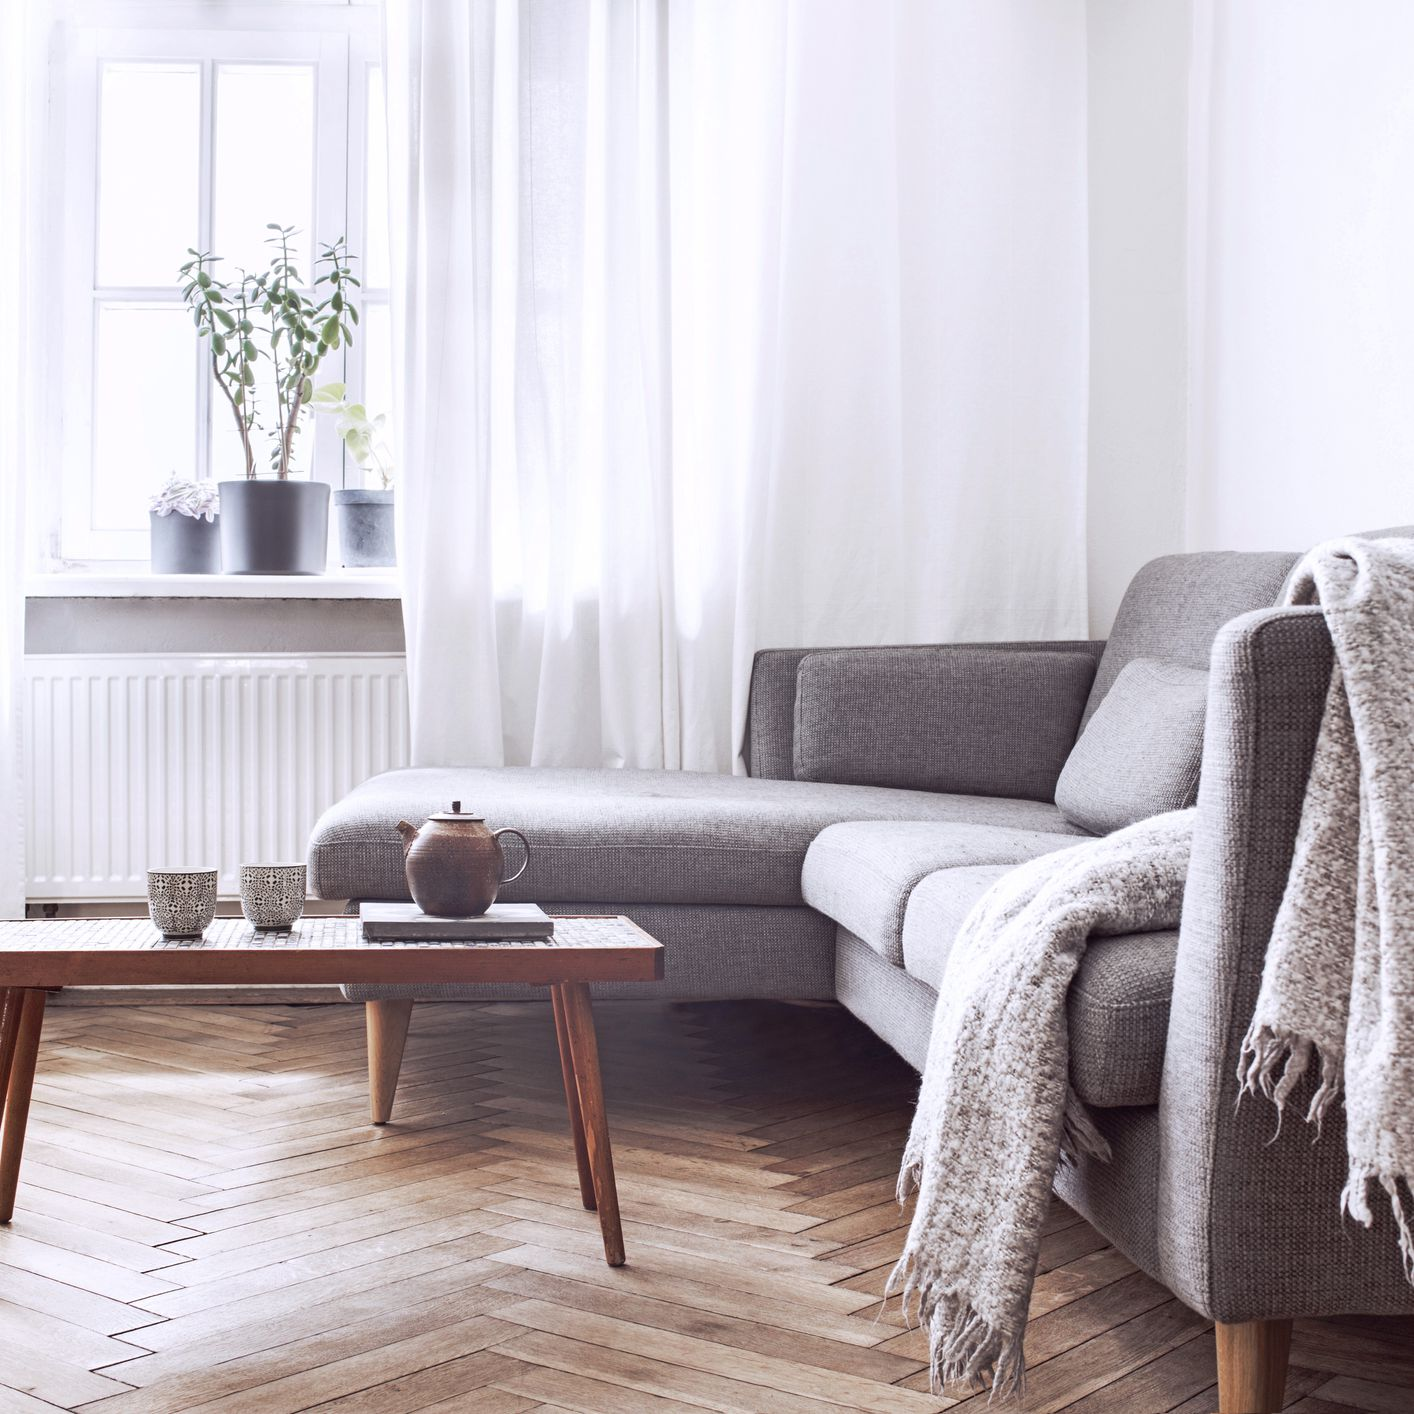 house decorating ideas on a budget.htm decorating an apartment on a budget  decorating an apartment on a budget